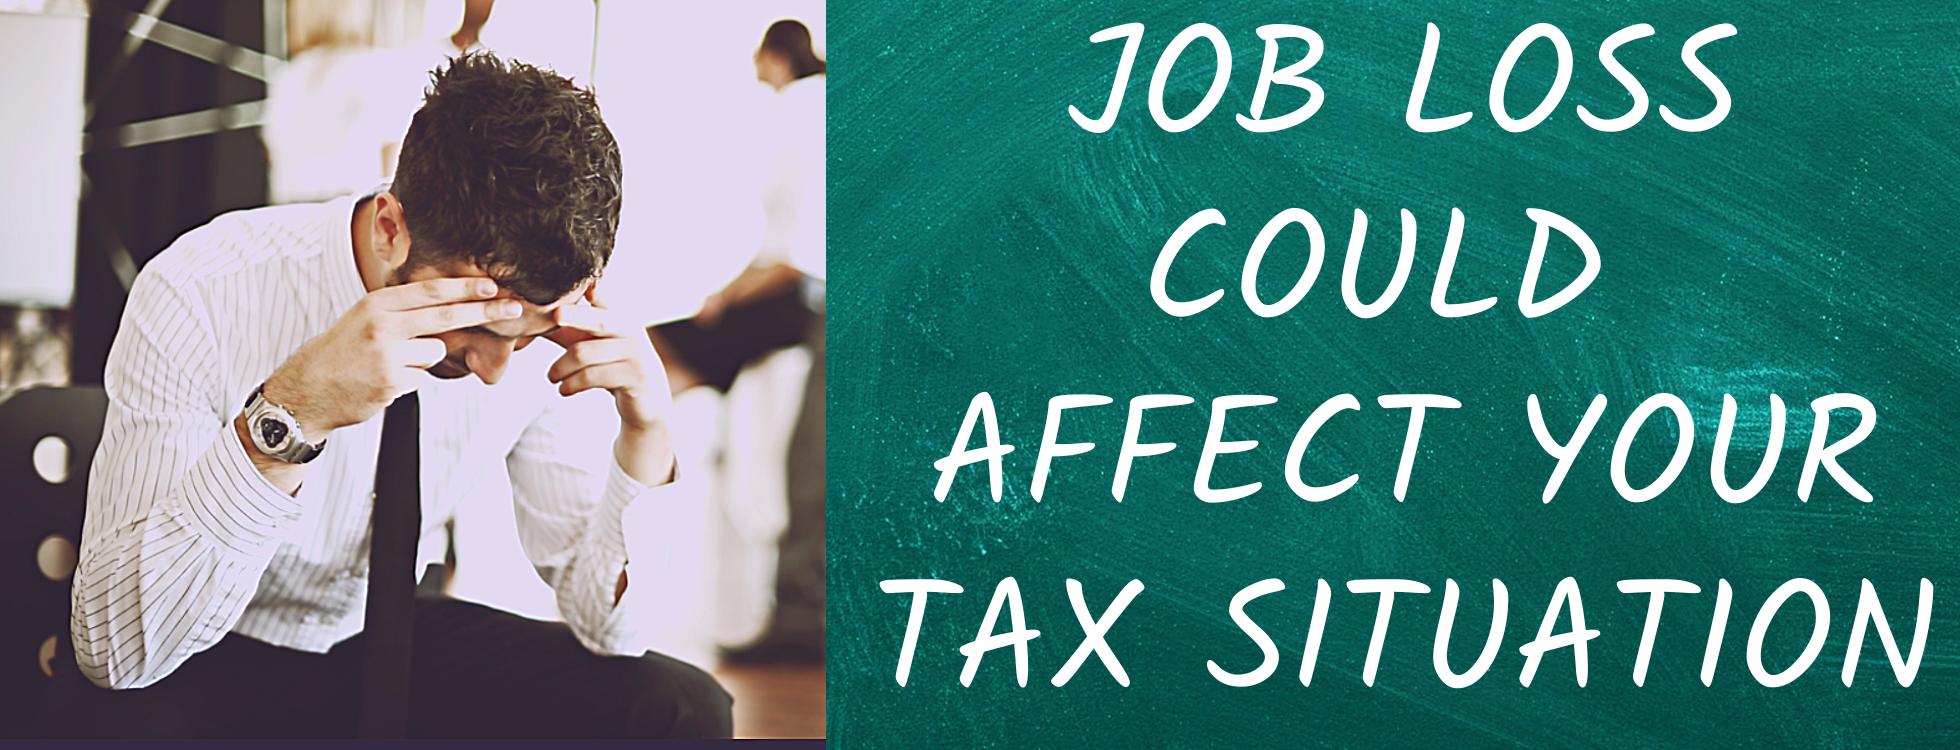 Job Loss Could Affect Your Tax Situation